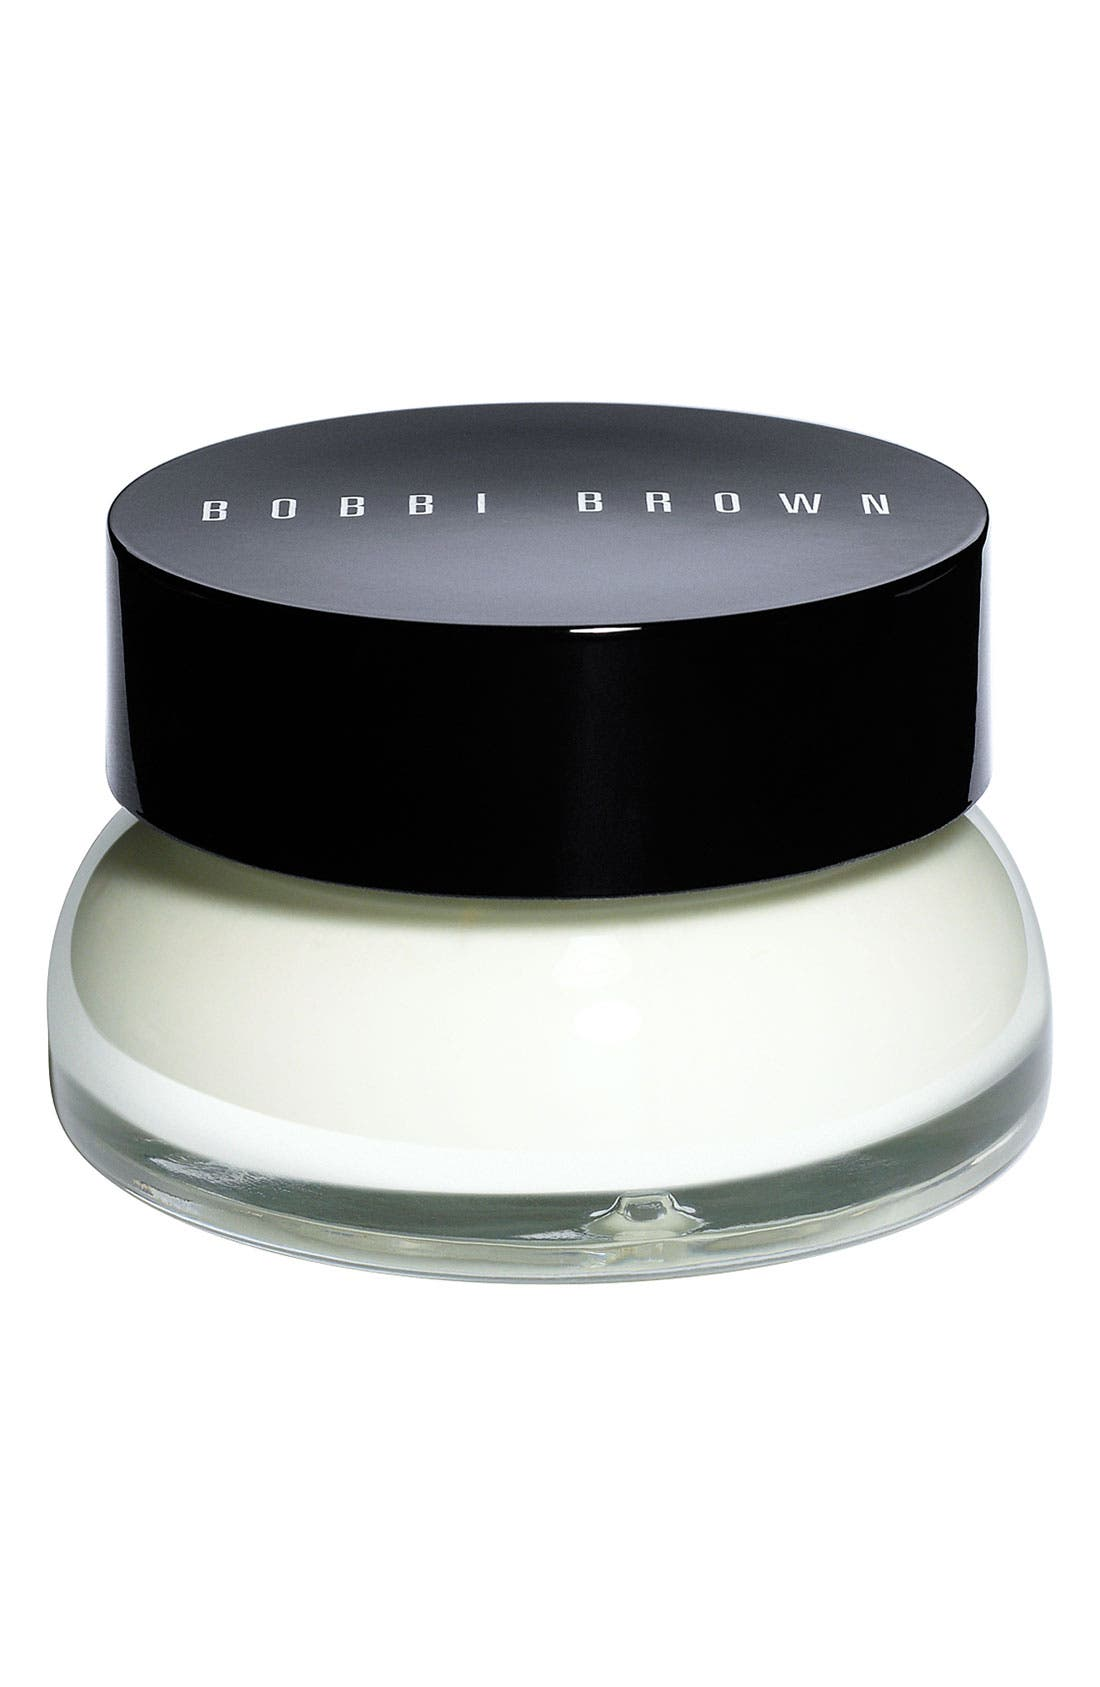 Bobbi Brown 'Extra Repair' Moisturizing Balm SPF 25